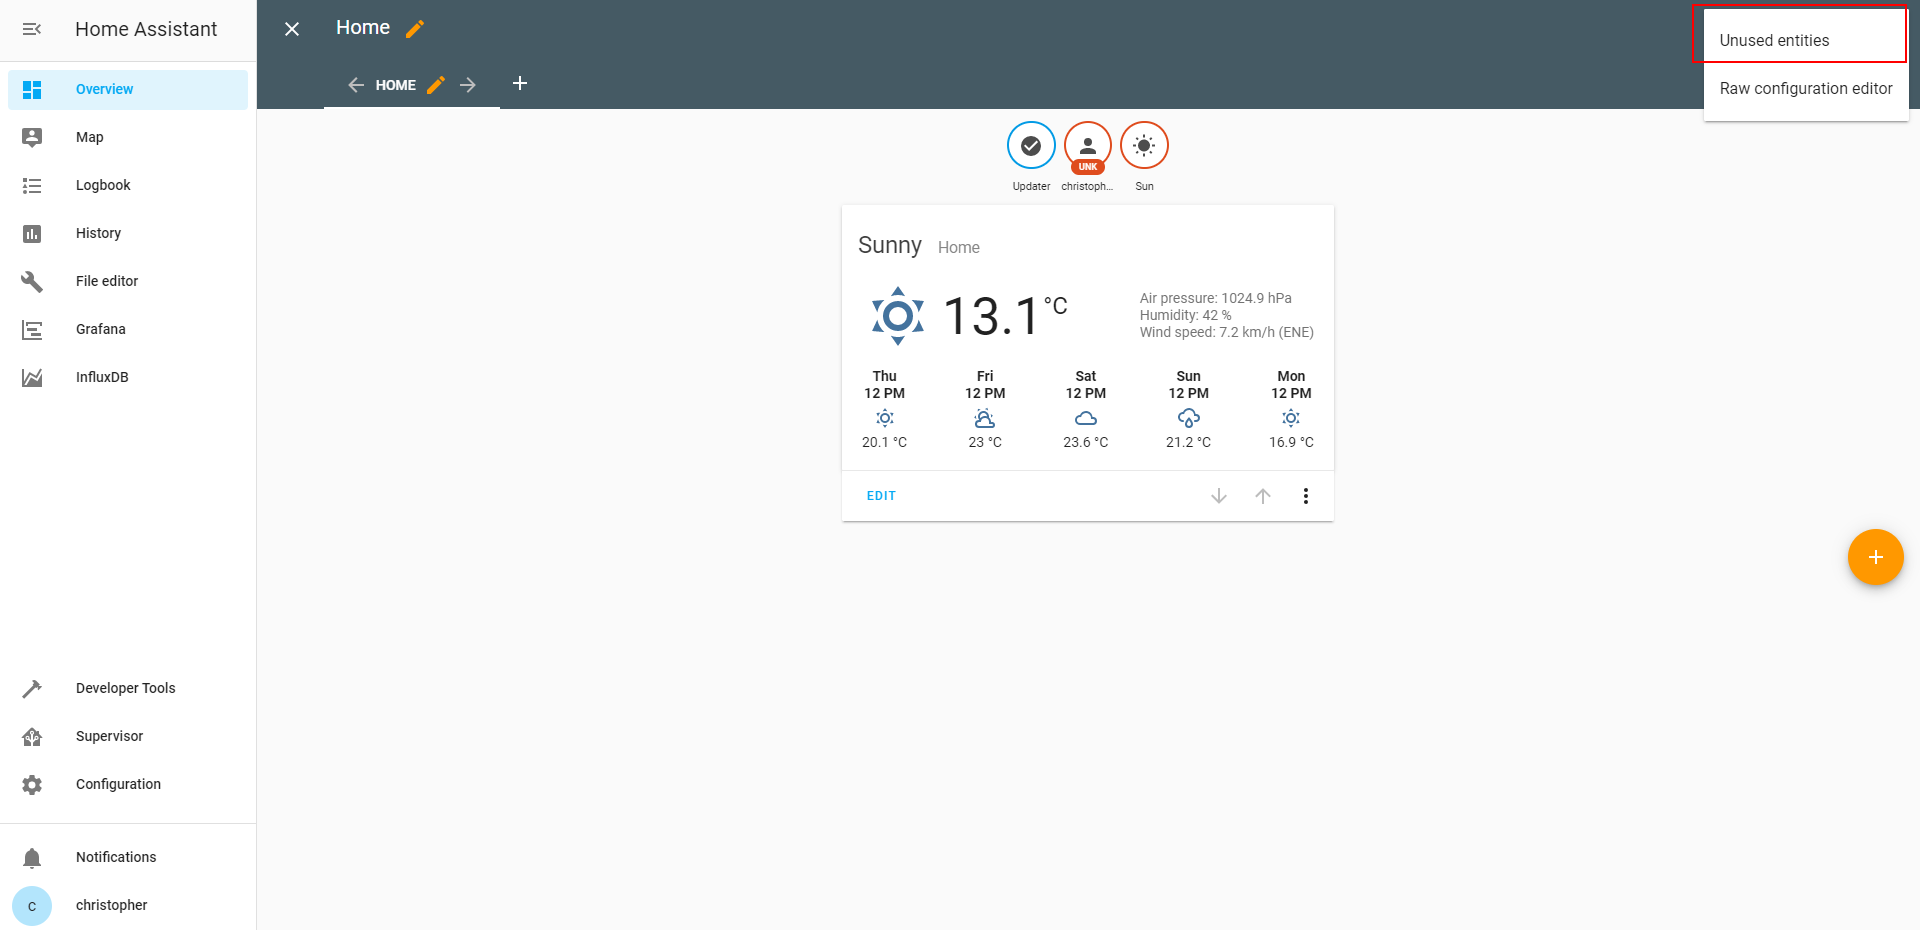 Home Assistant UI 2